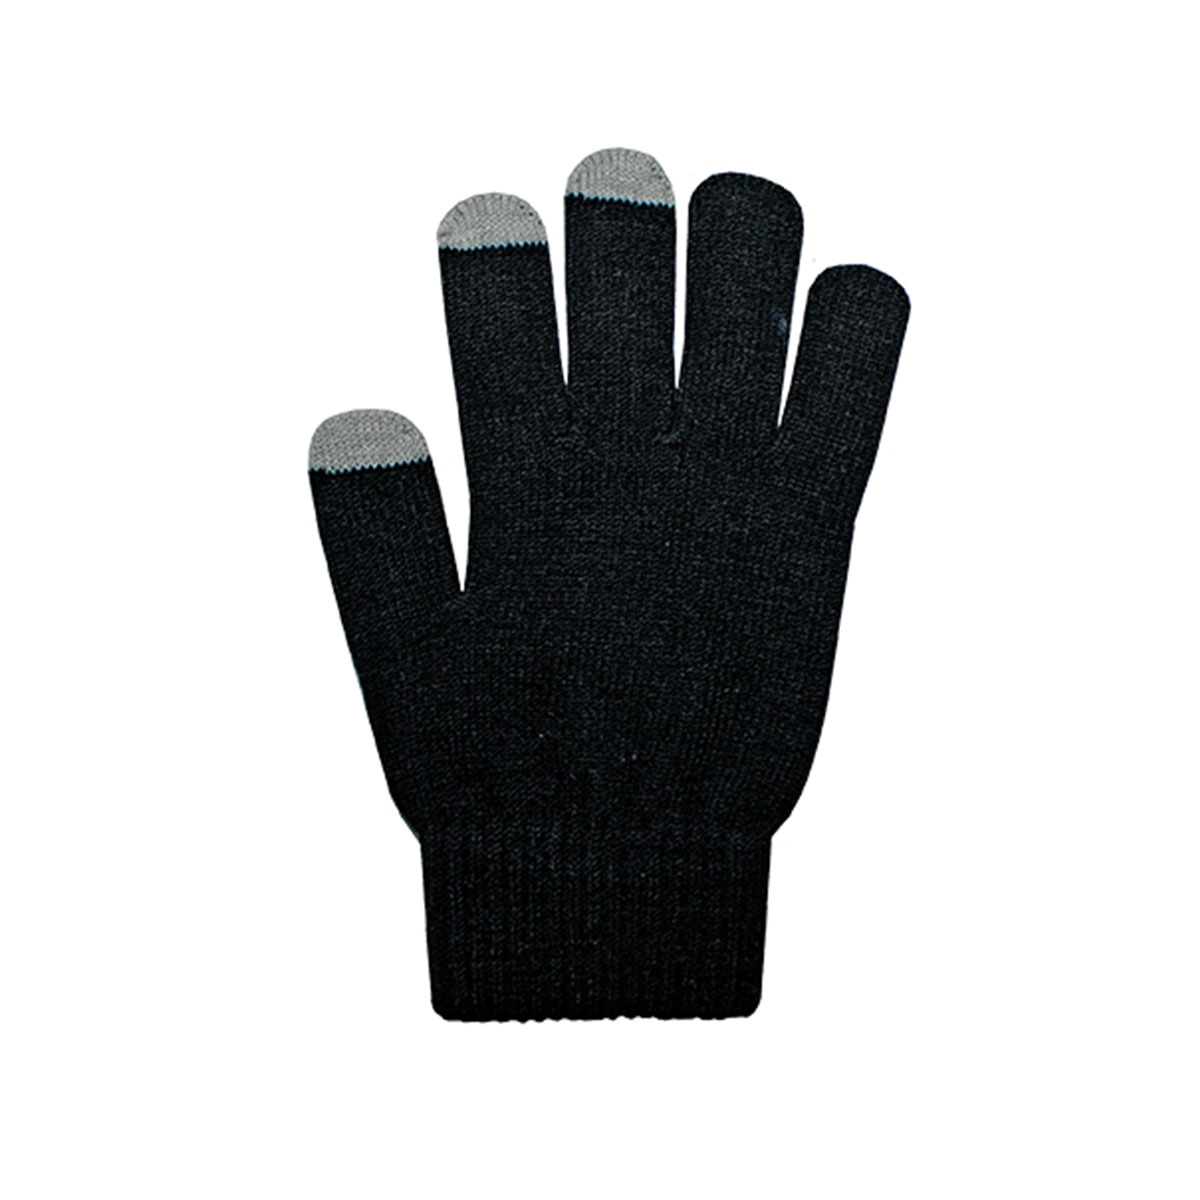 Black Universal Touch Screen Gloves